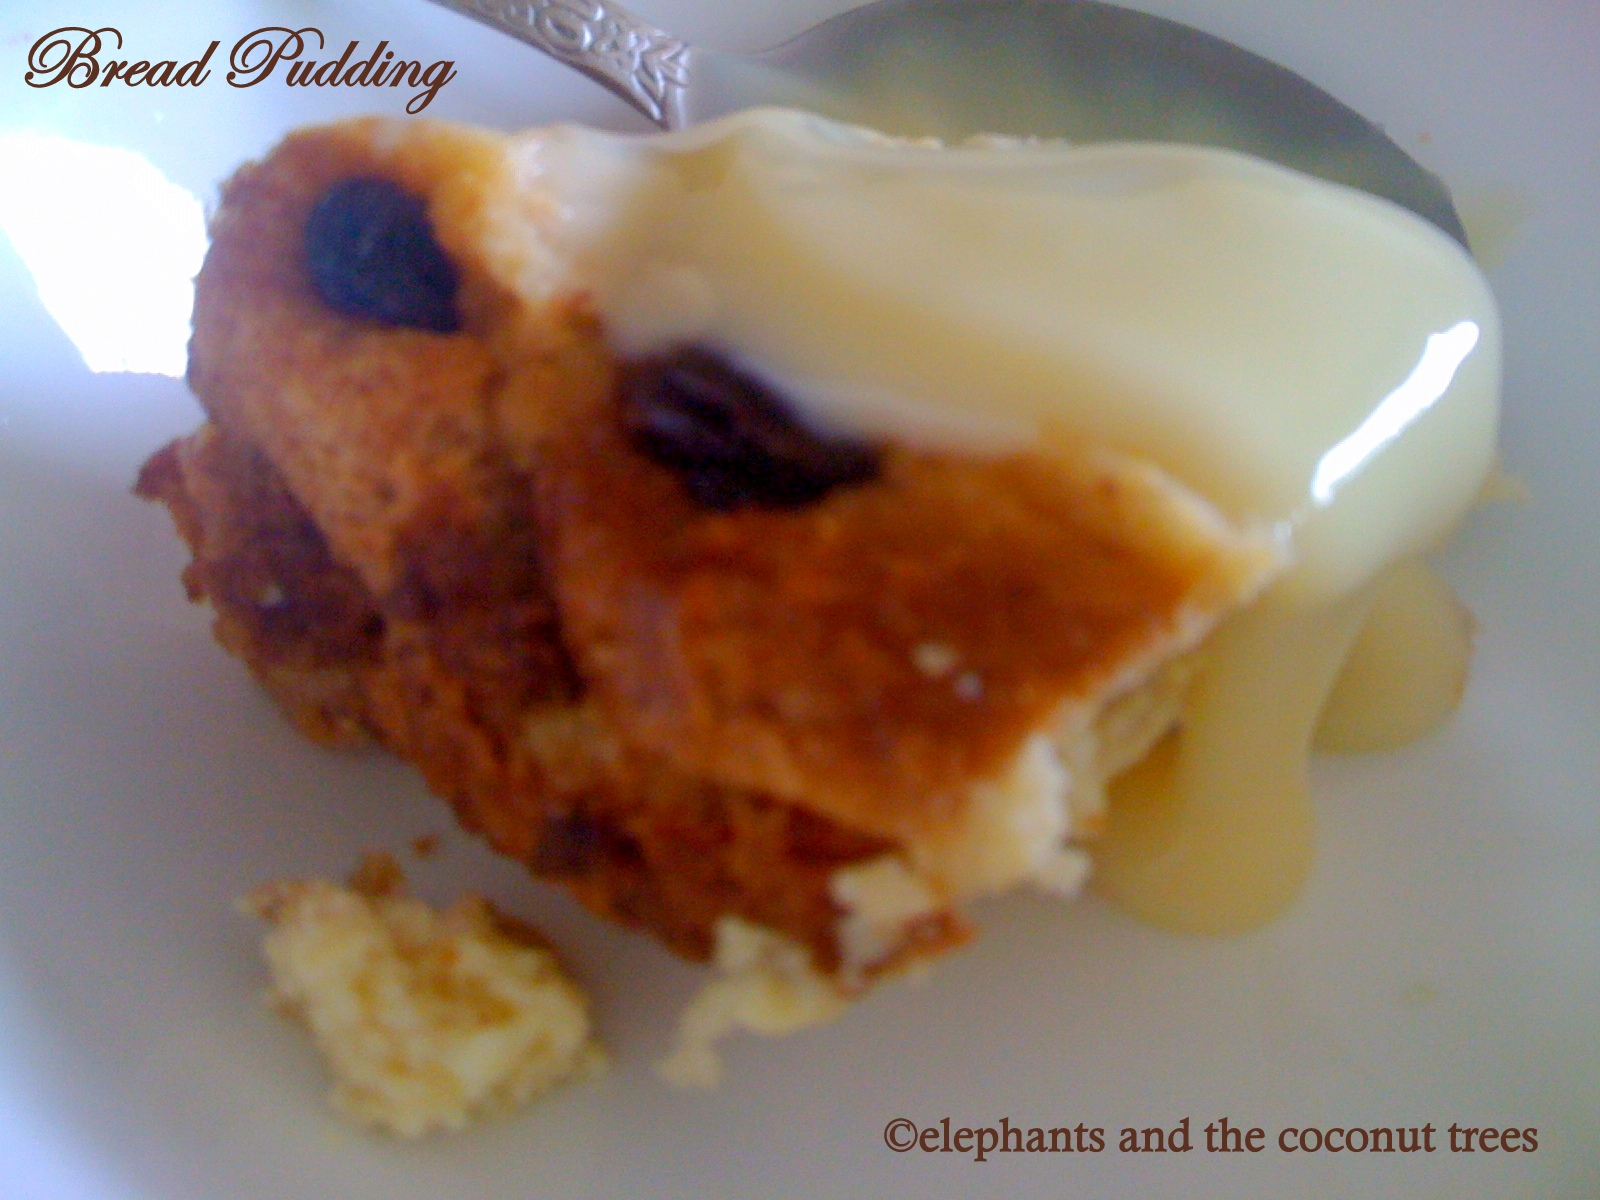 ... : Traditional British bread and butter pudding / Bread pudding (easy